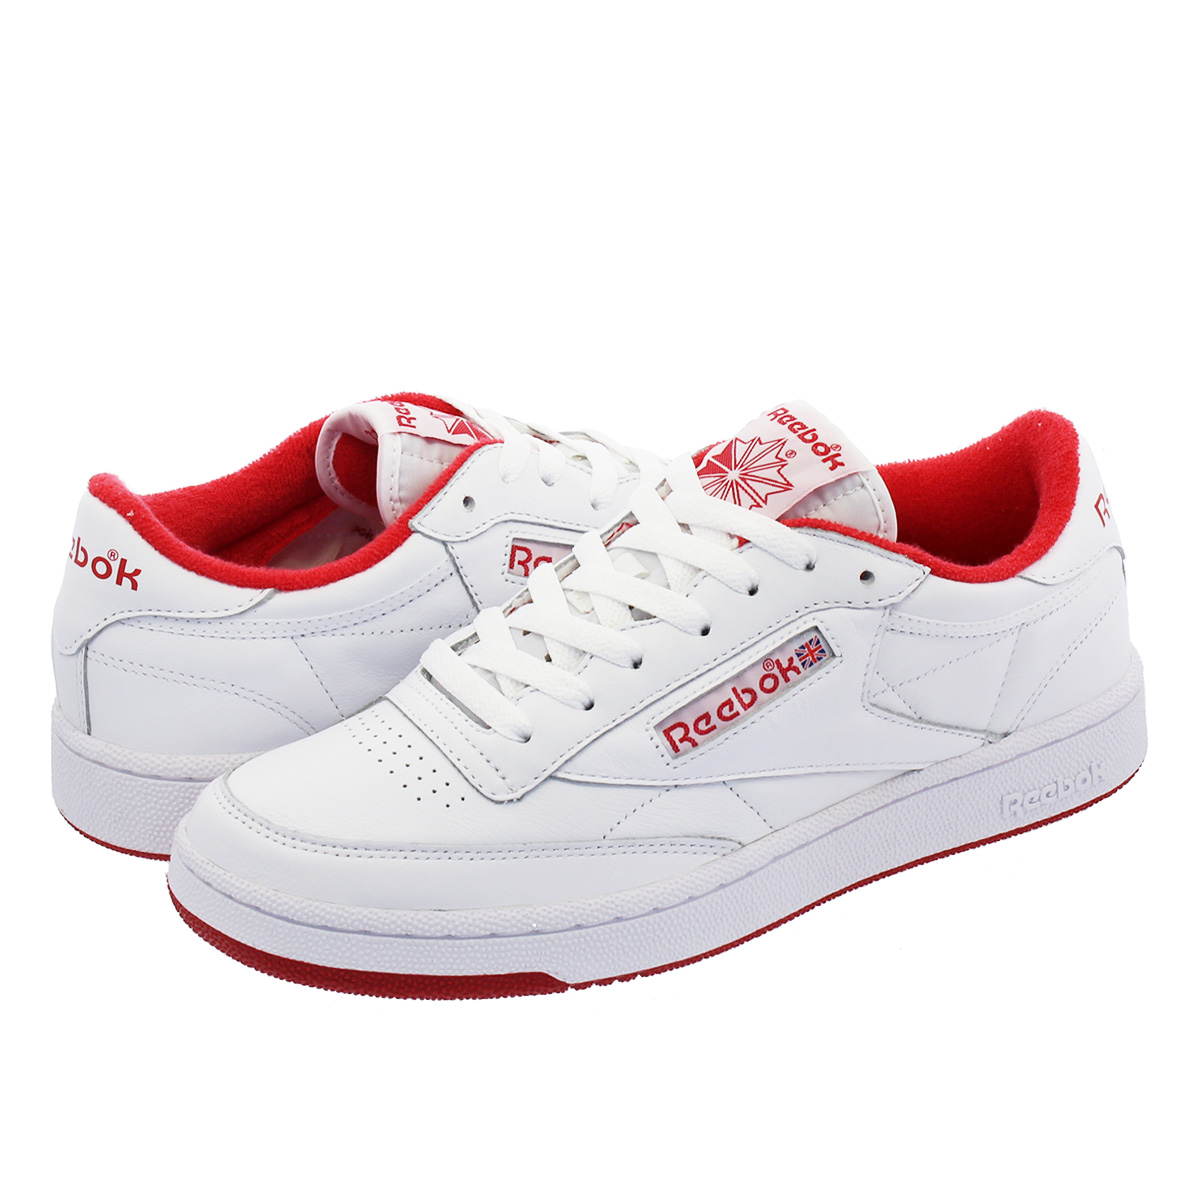 eae8970c04154b Reebok CLUB C 85 ARCHIVE Reebok club C 85 ARCHIVE WHITE EXCELLENT RED cn3711